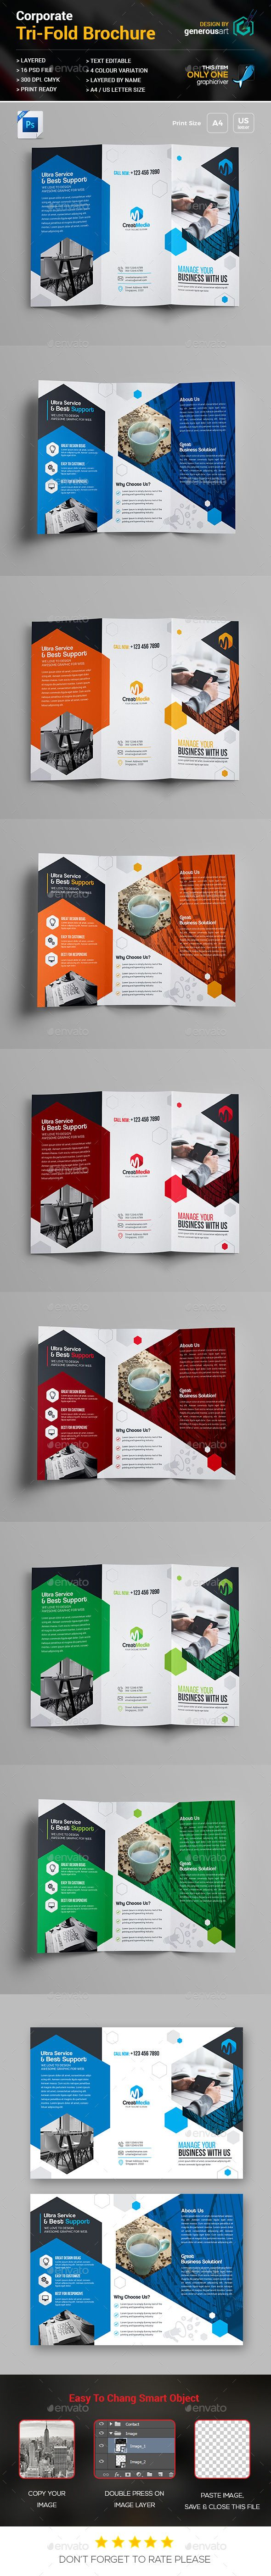 Business TriFold Brochure Template PSD